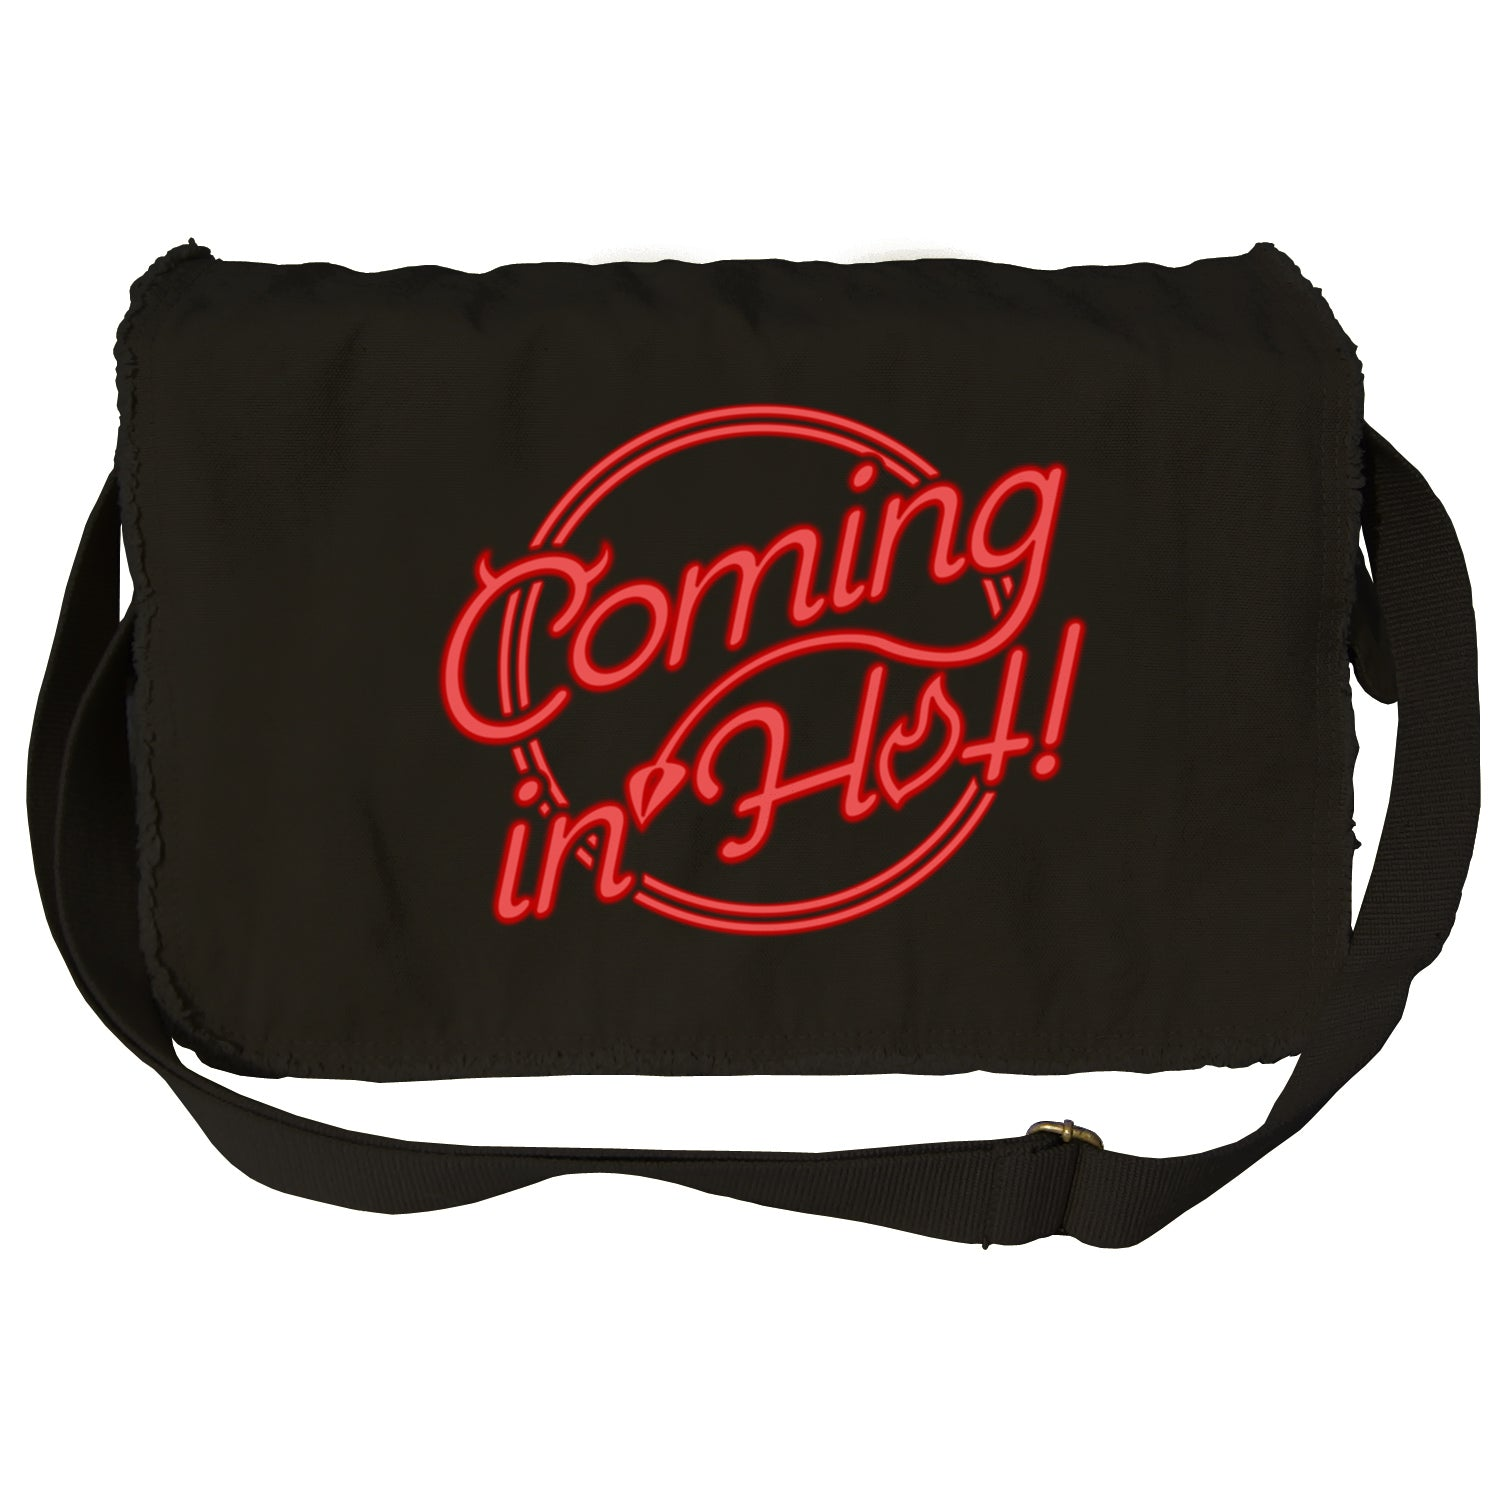 Coming in Hot Messenger Bag